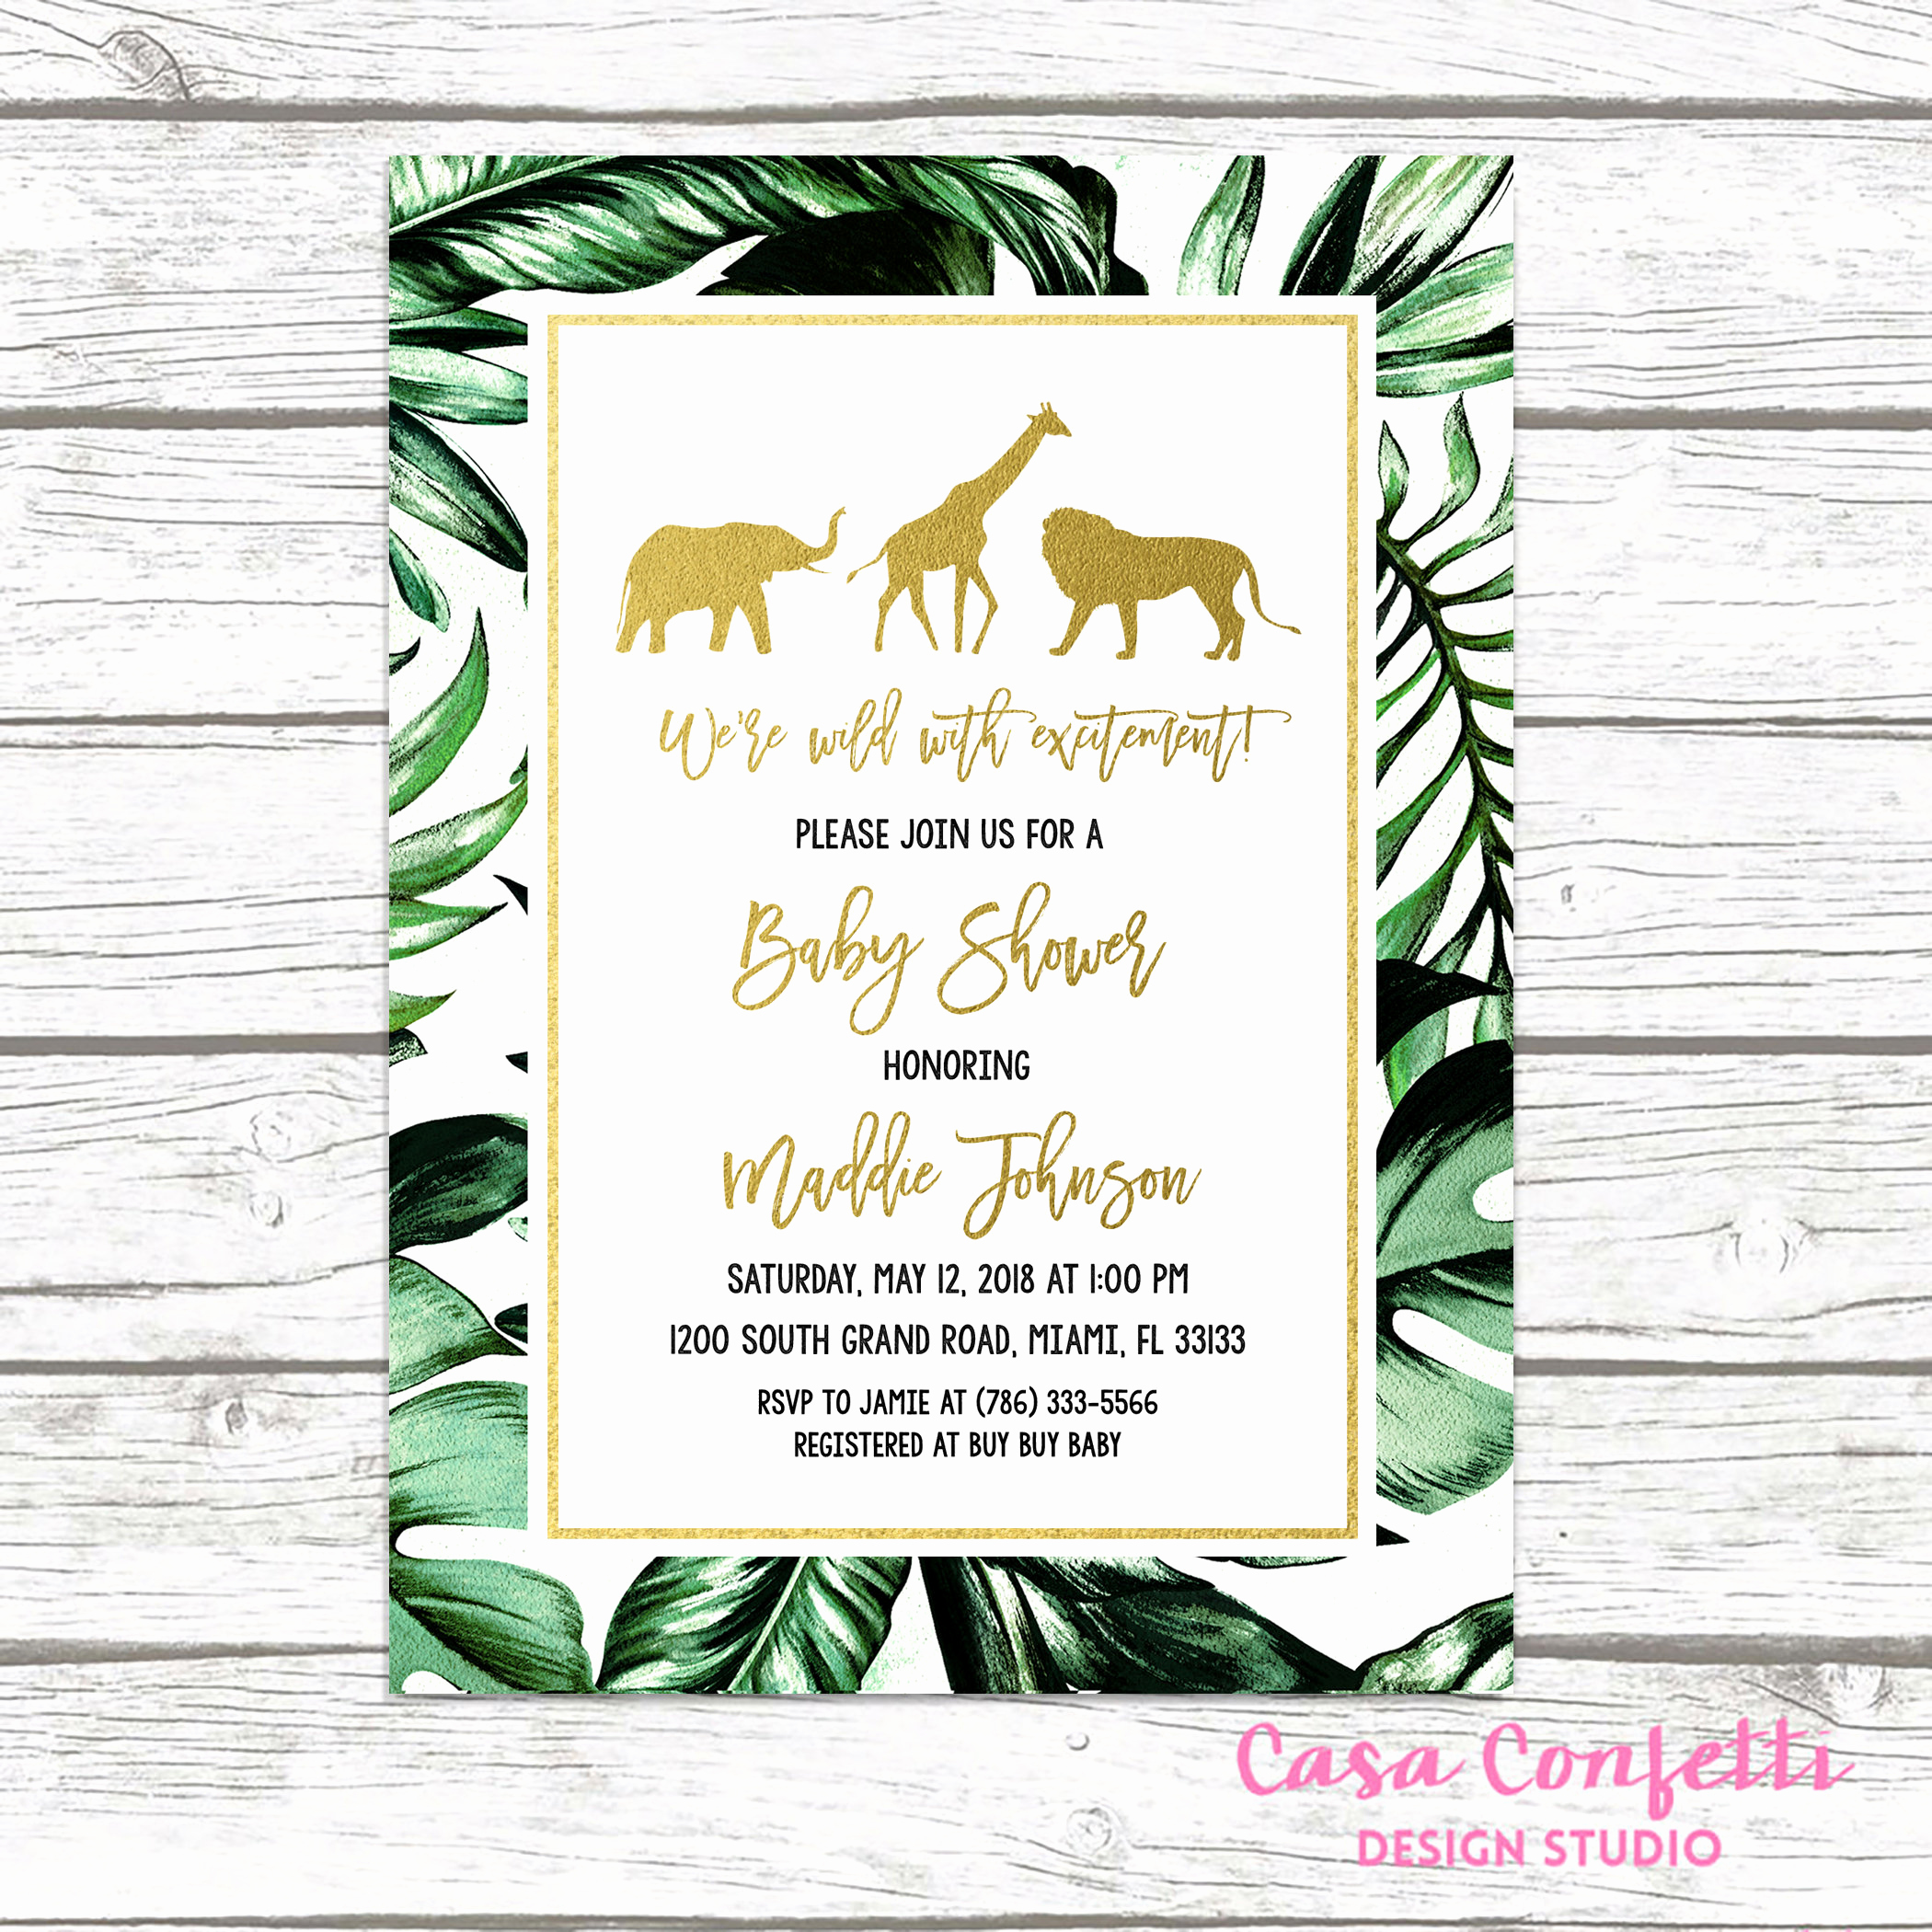 Baby Shower Safari Invitation New Safari Baby Shower Invitation Gold Safari Baby Shower